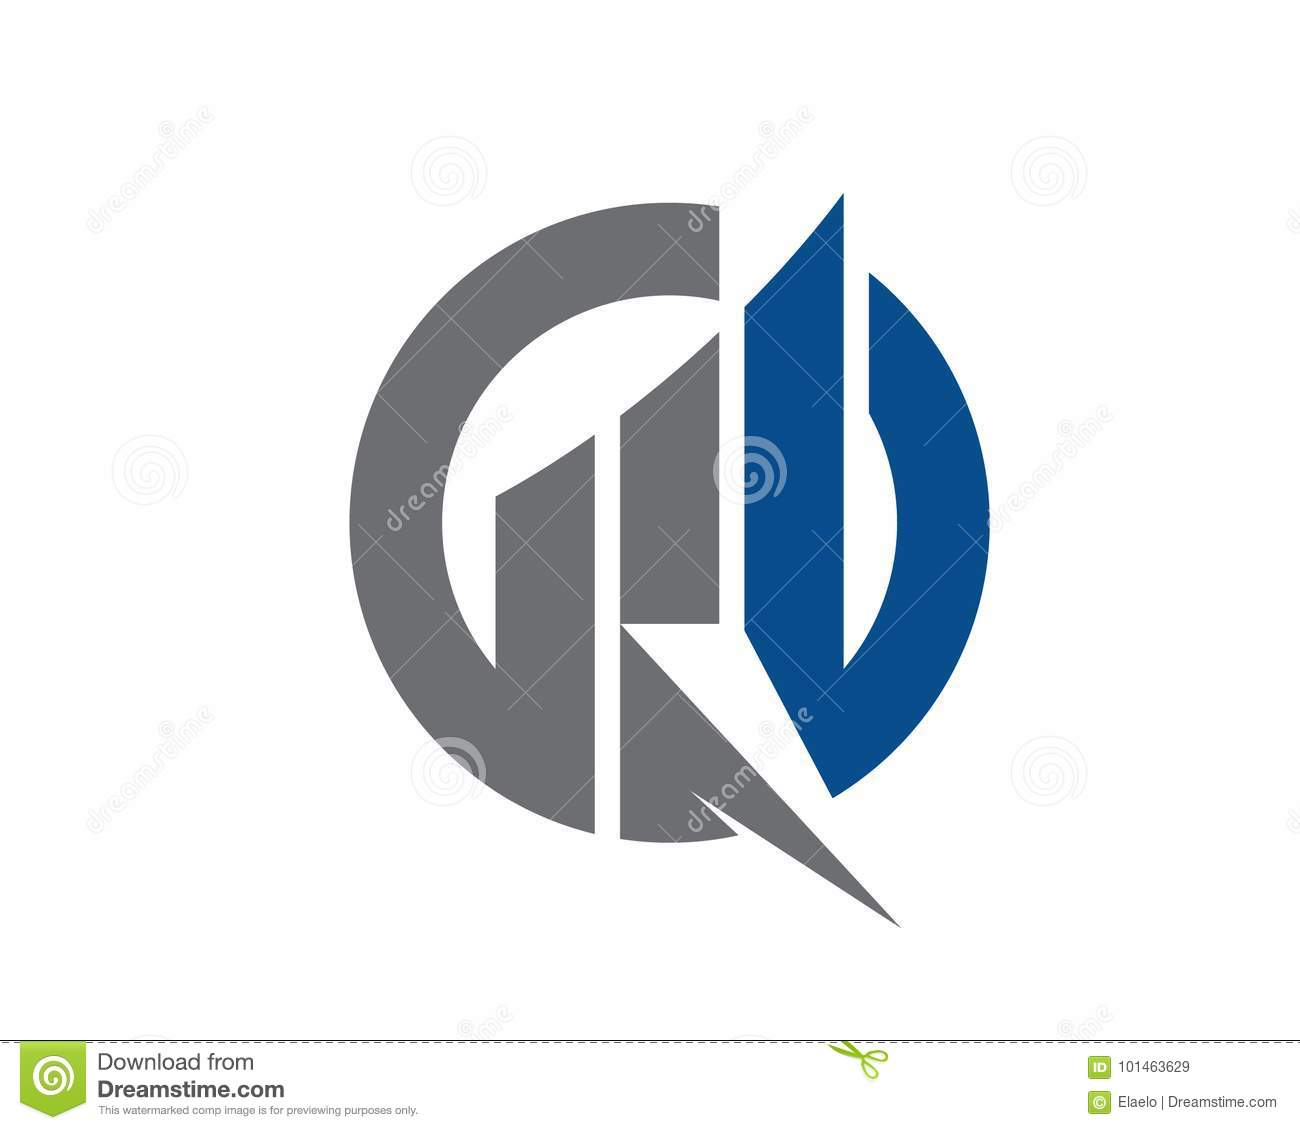 Property And Construction Logo Stock Vector - Image: 101463629